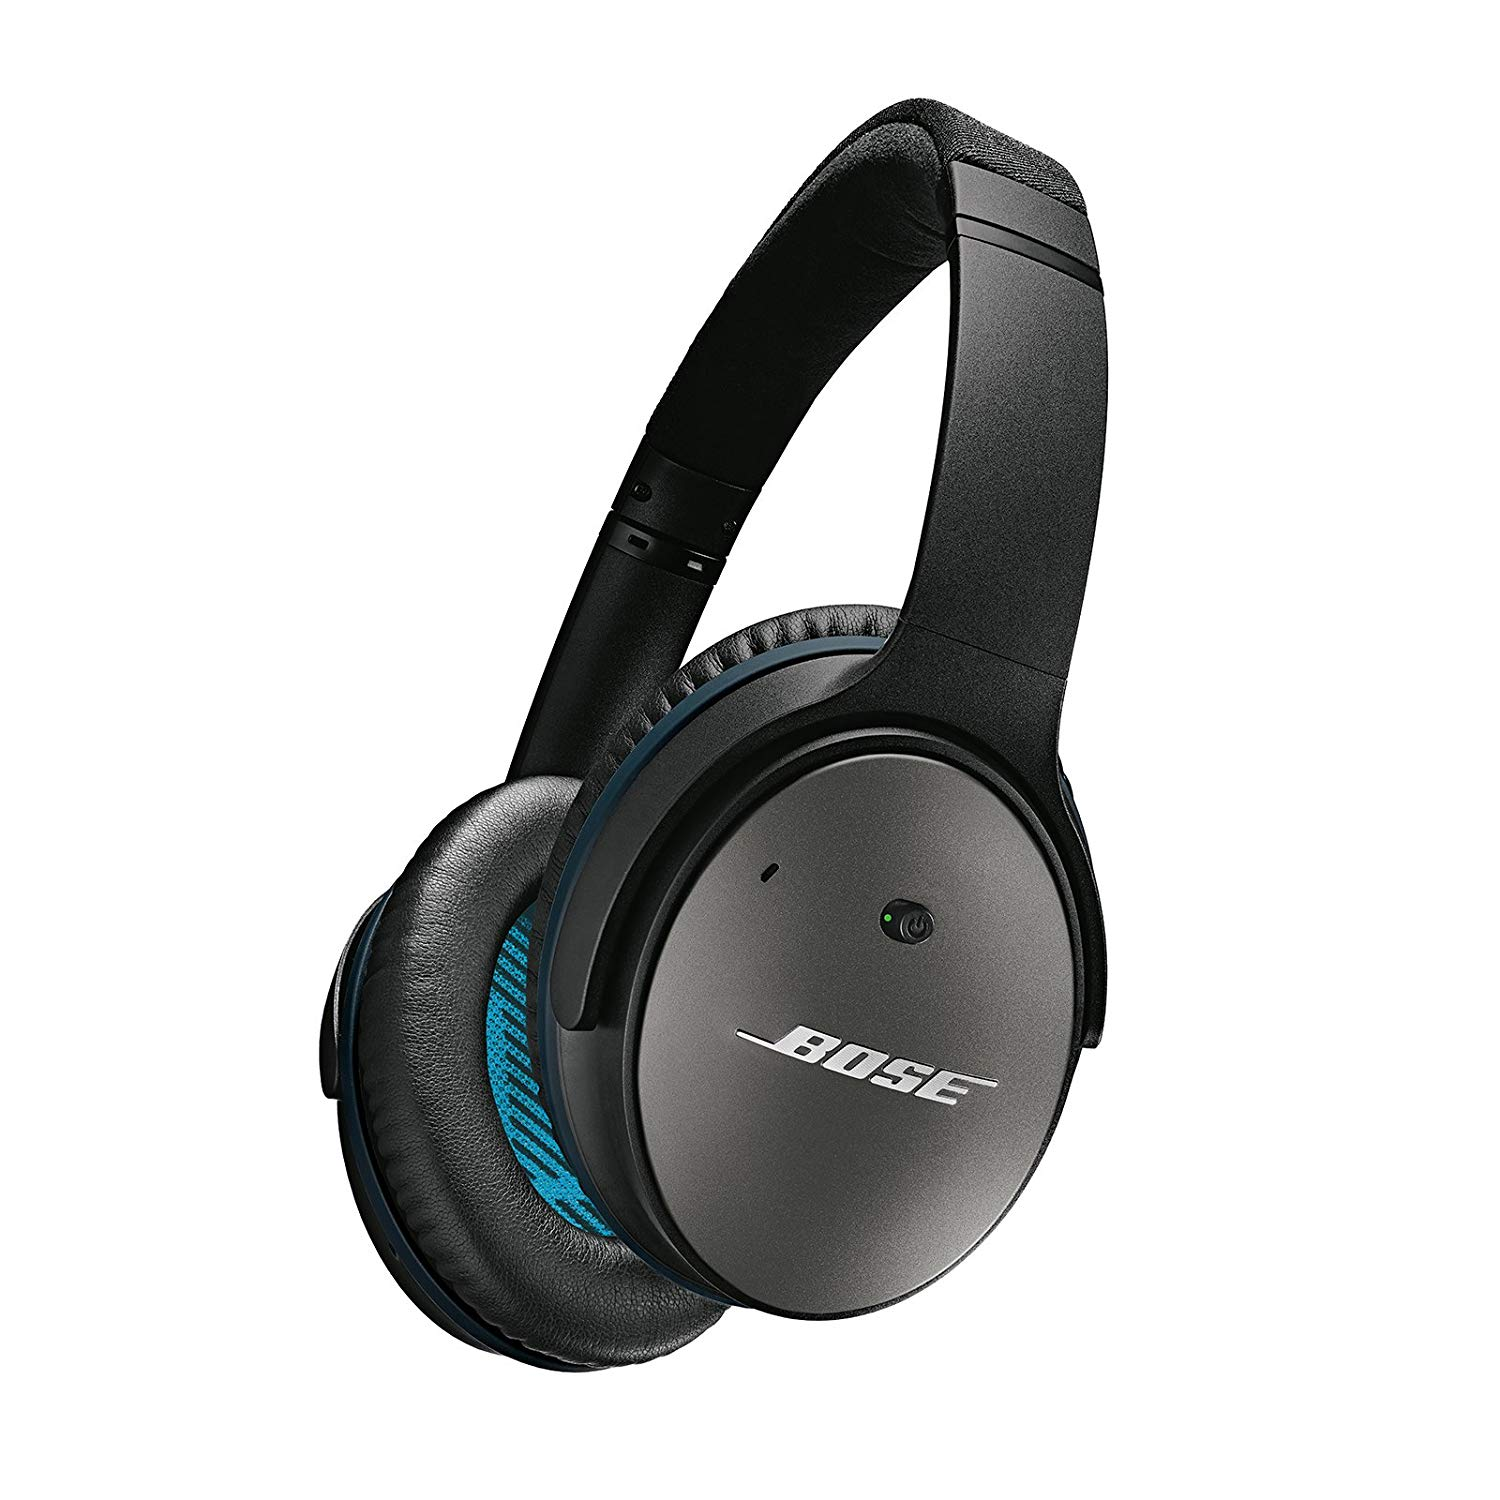 Bose QuietComfort 25 Acoustic Noise Cancelling Headphones For Apple Device